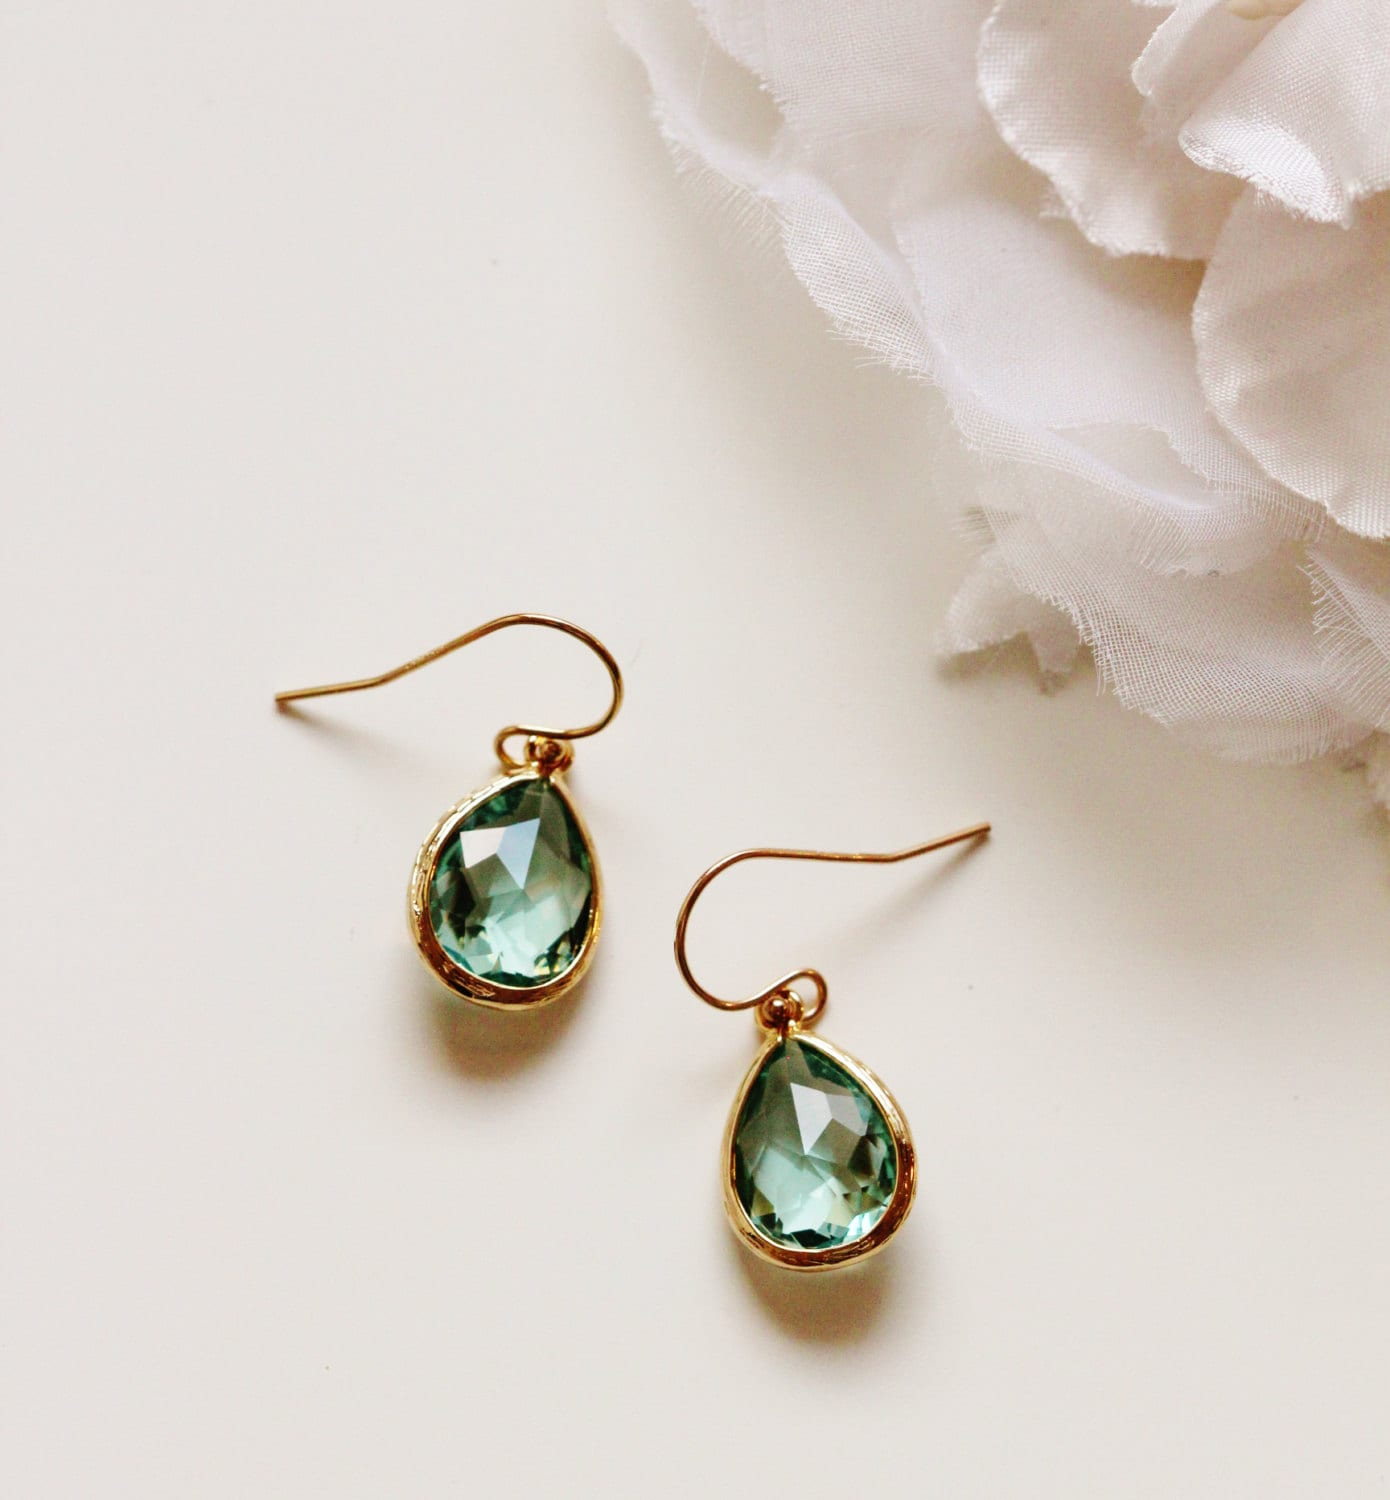 for aqua gifts dress beach wedding and destination bridesmaid files gold styles best ideas earrings trend